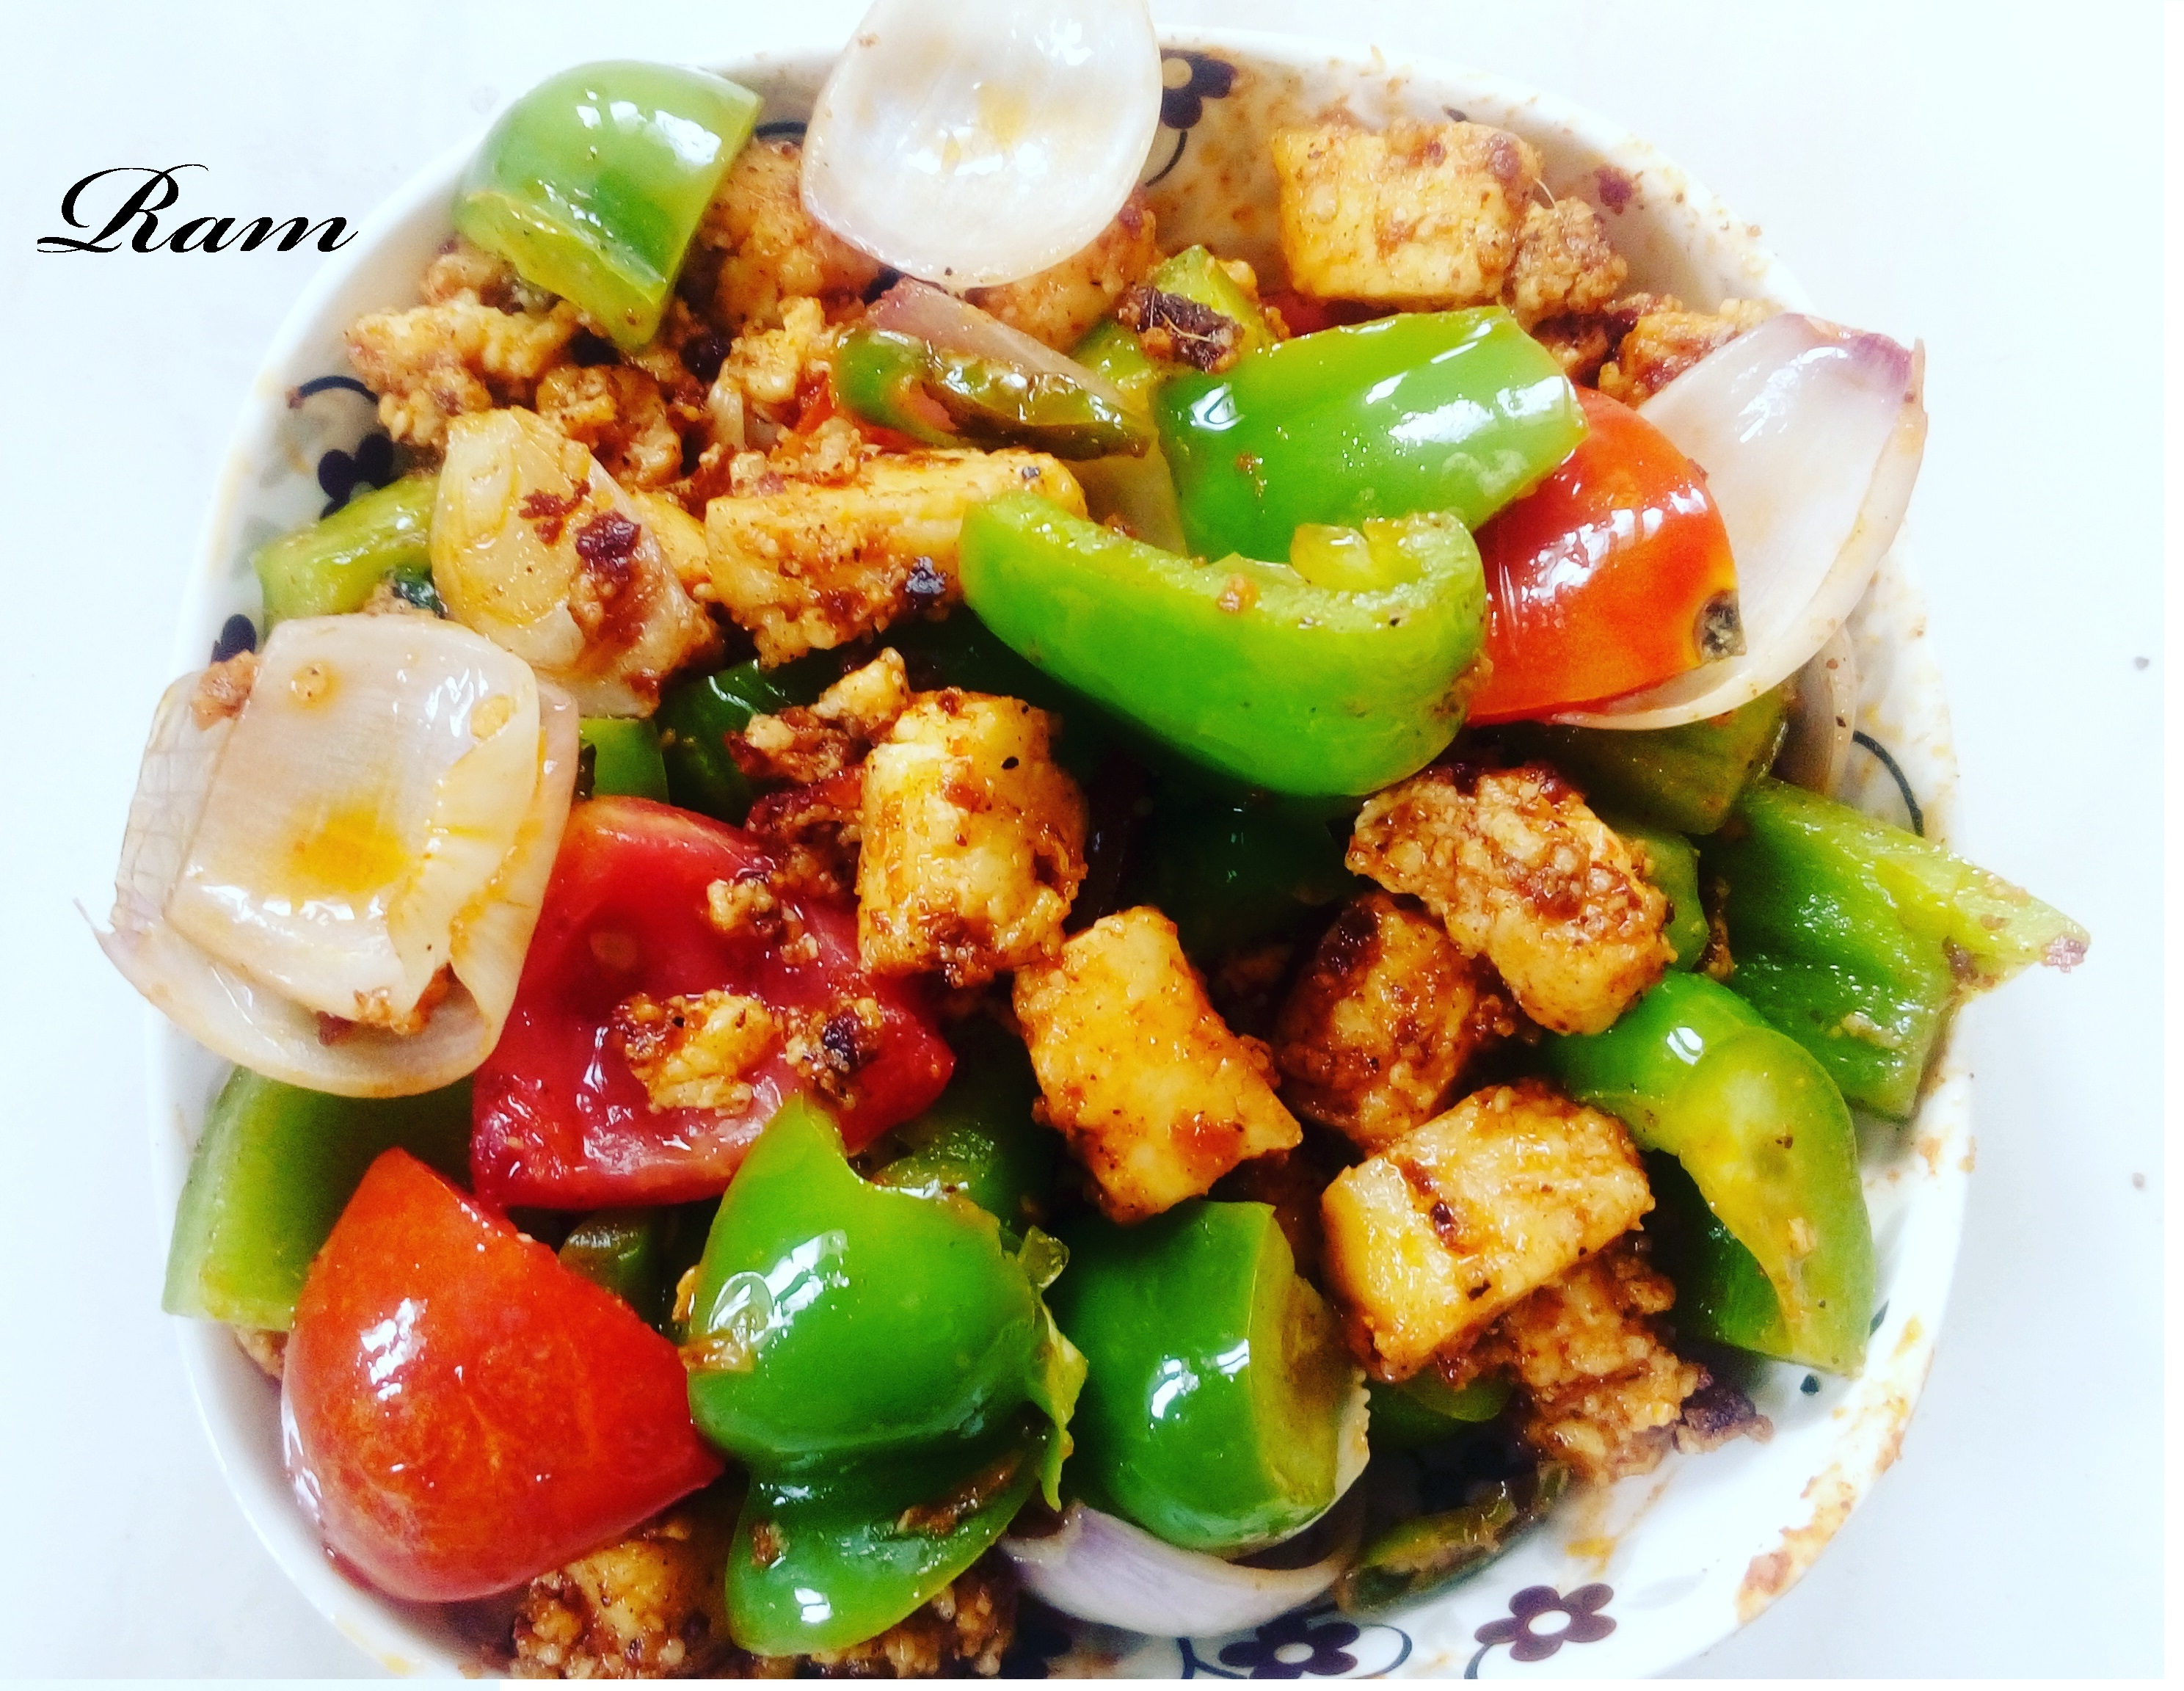 Pan Fried Paneer With Veggies